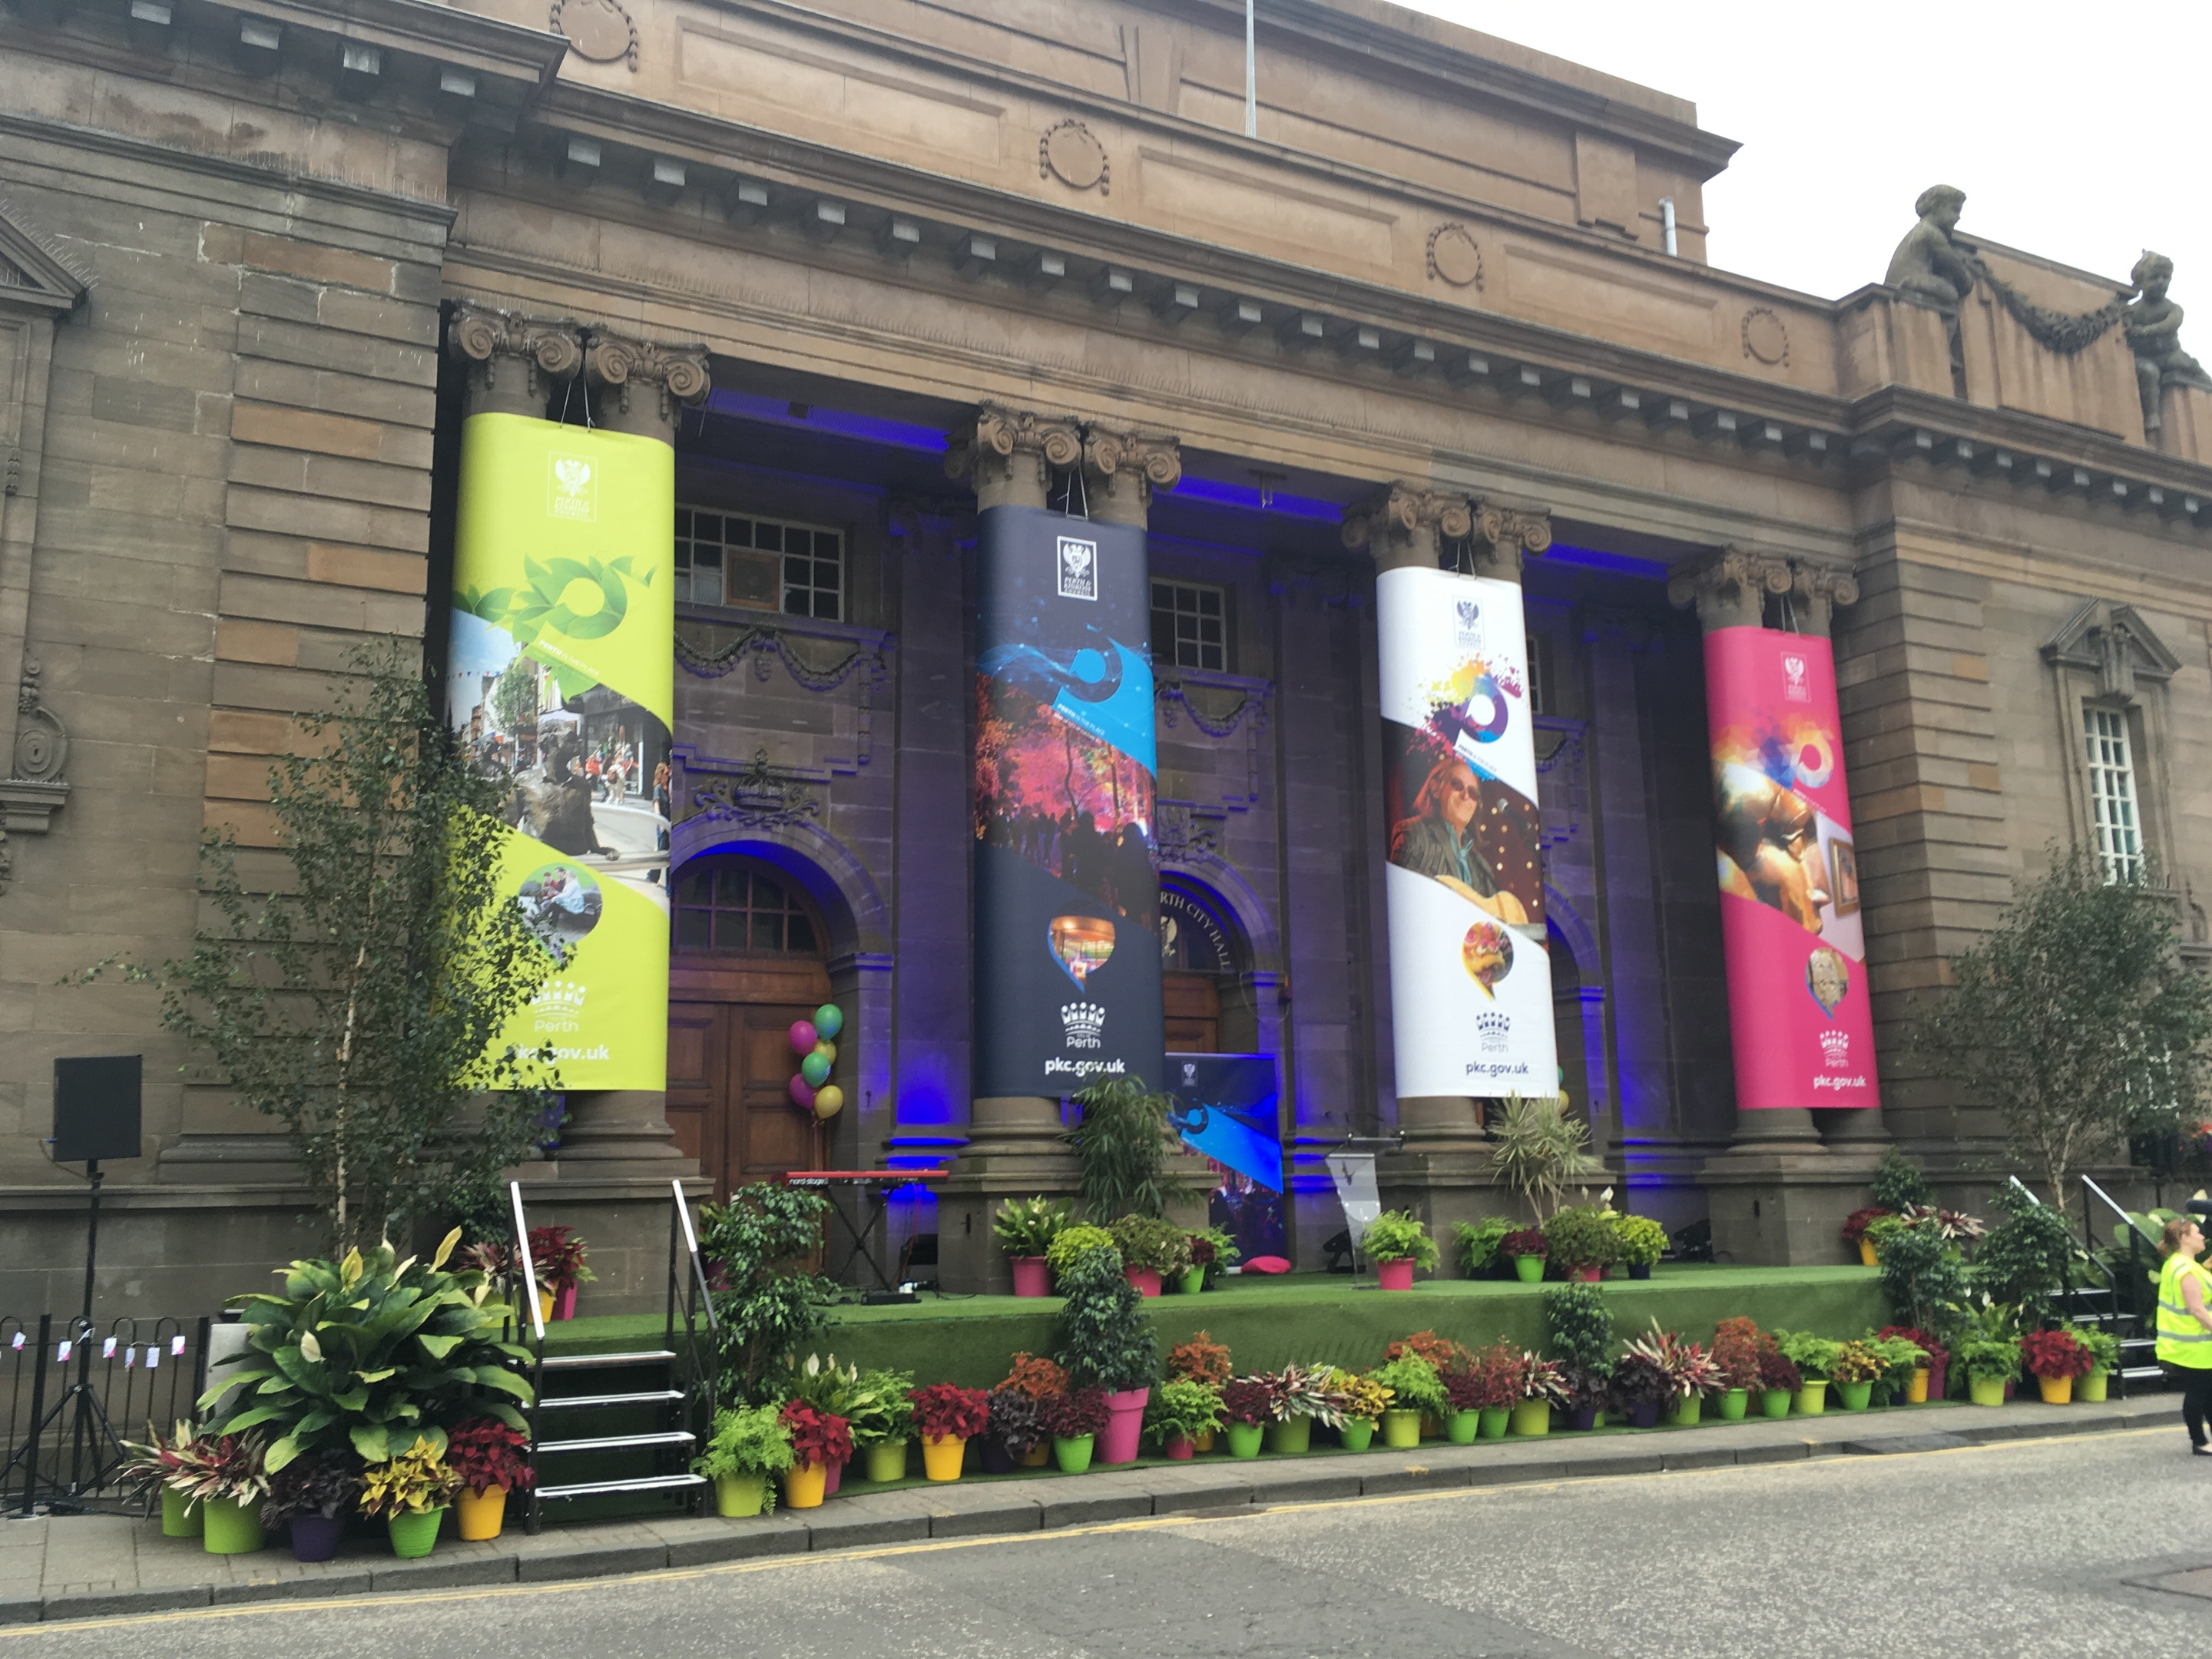 Perth City Hall, decorated for city of culture campaign.